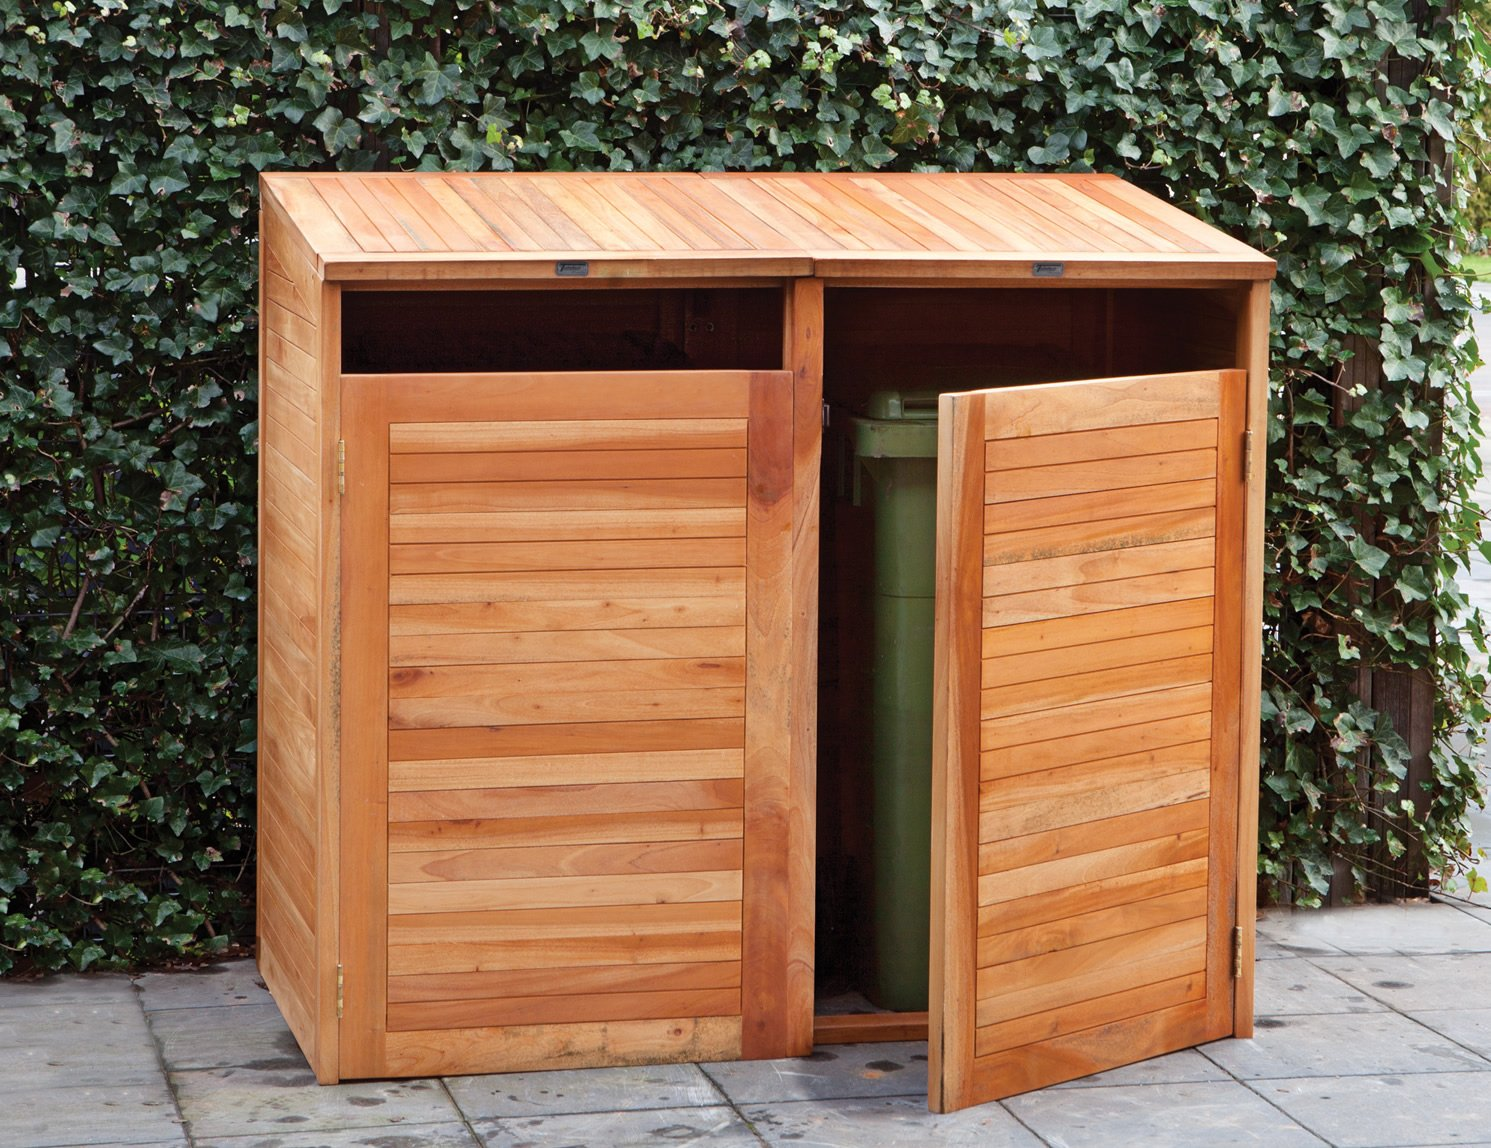 Hardwood double wheelie bin store for Meuble exterieur